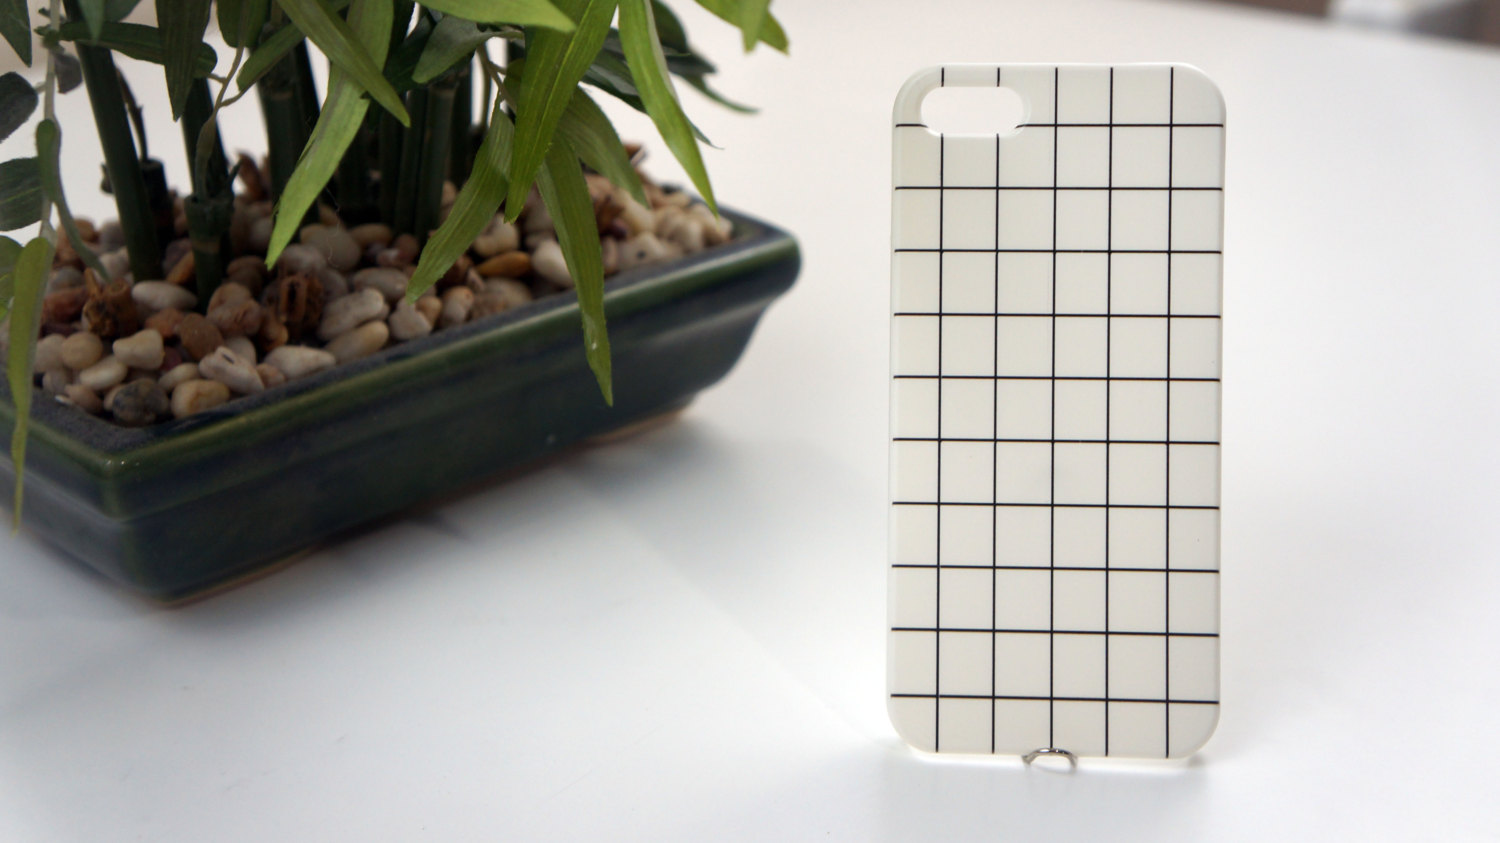 White Gridded Grid Tumblr IPhone 4/5/5S/4S/5C/6 Case Cheap Phone Case